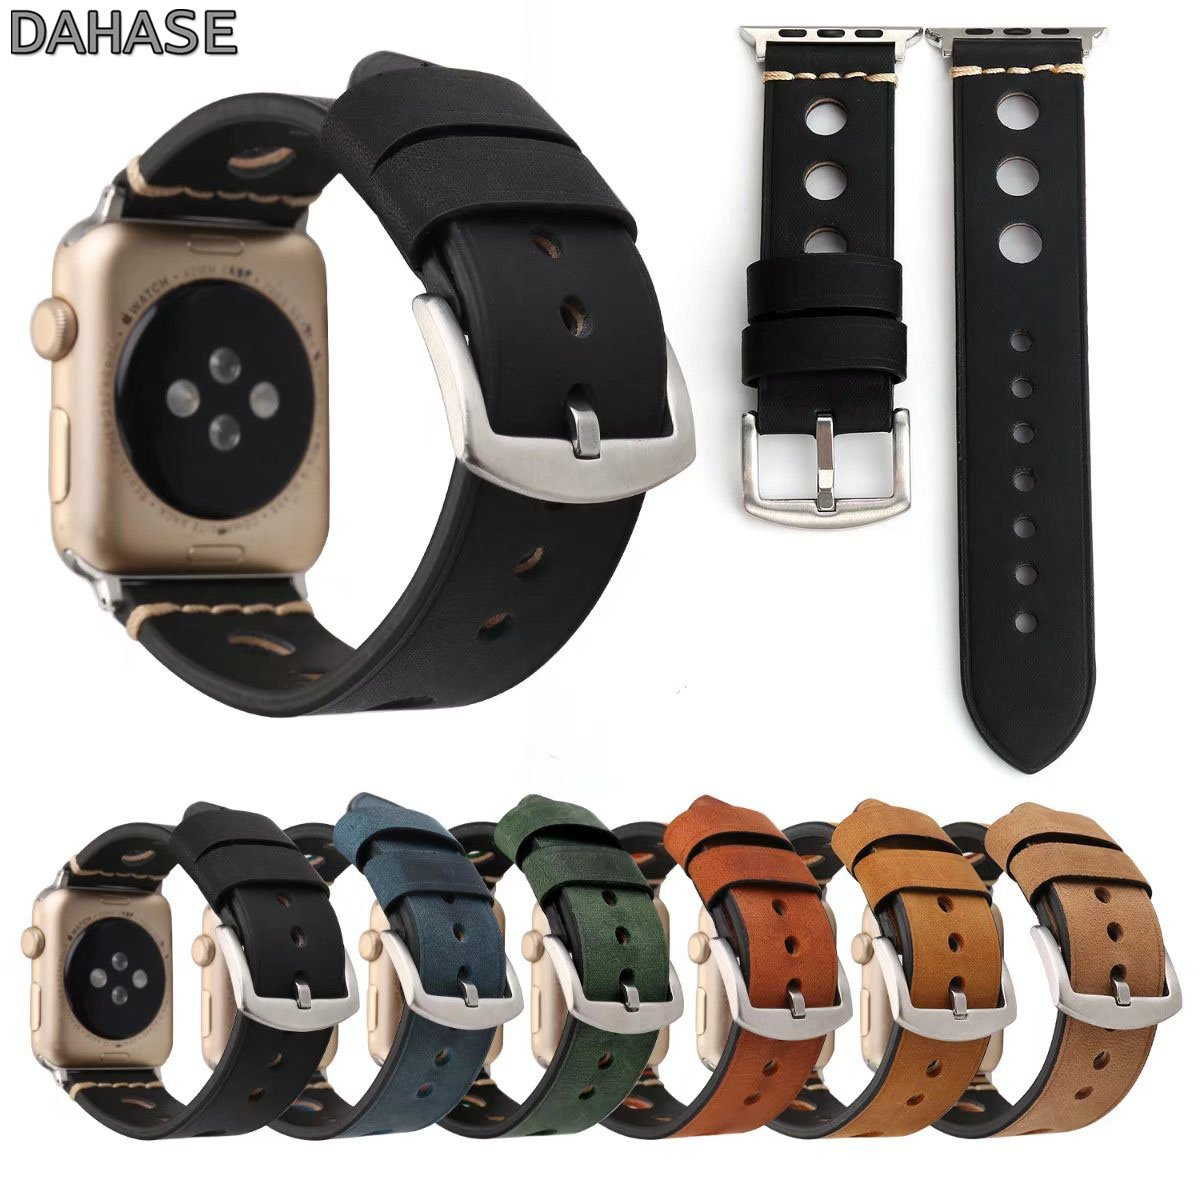 Round Hole Genuine Leather Band for Apple Watch iWatch Series 1 2 3 4 5 Strap Metal Buckle Retro Watchband 44mm 42mm 40m